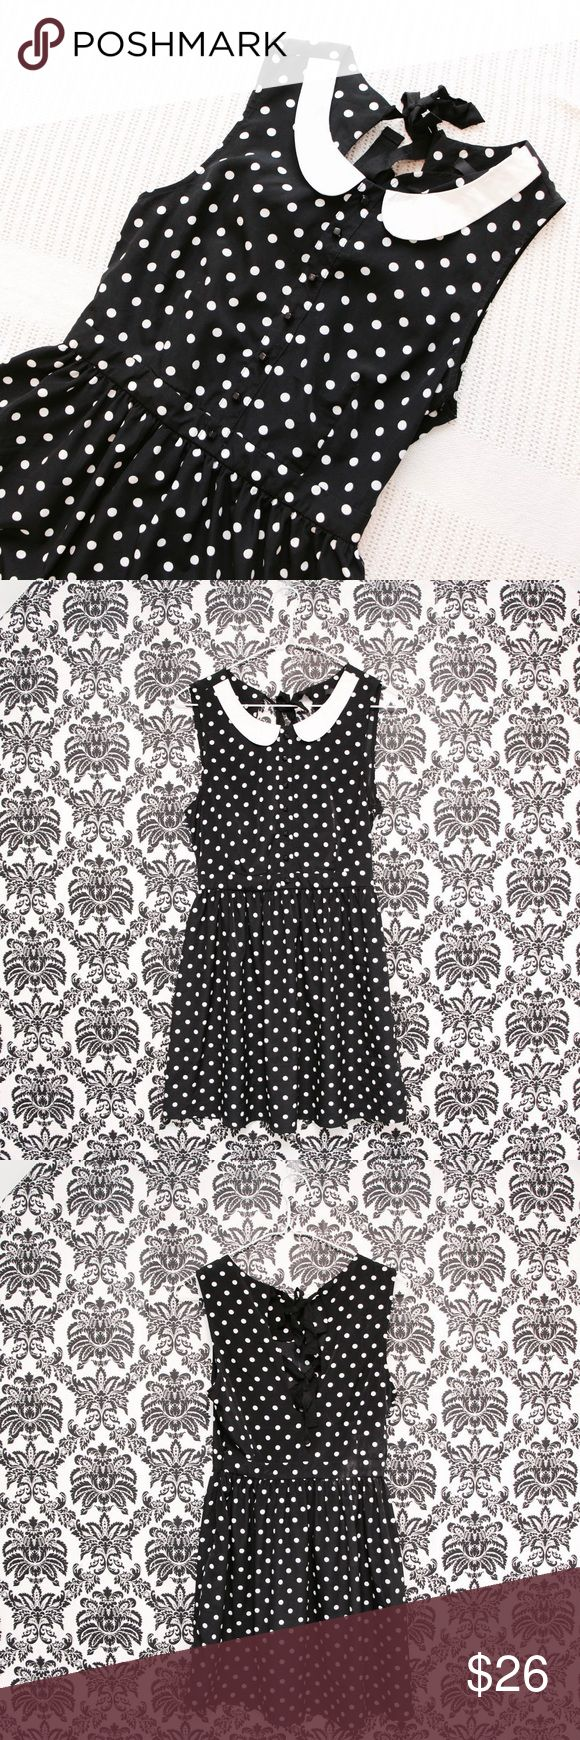 Forever 21 Polka Dot Dress Black & white polka dot dress from Forever 21, NWOT!! Tried on but never worn. Cute Peter Pan collar with ribbon ties in the back. Zips up on the side. Great flowy material, very flattering on! Goes great with a pair of polka dot shoes in my closet 😉 Bundle to save!! Forever 21 Dresses